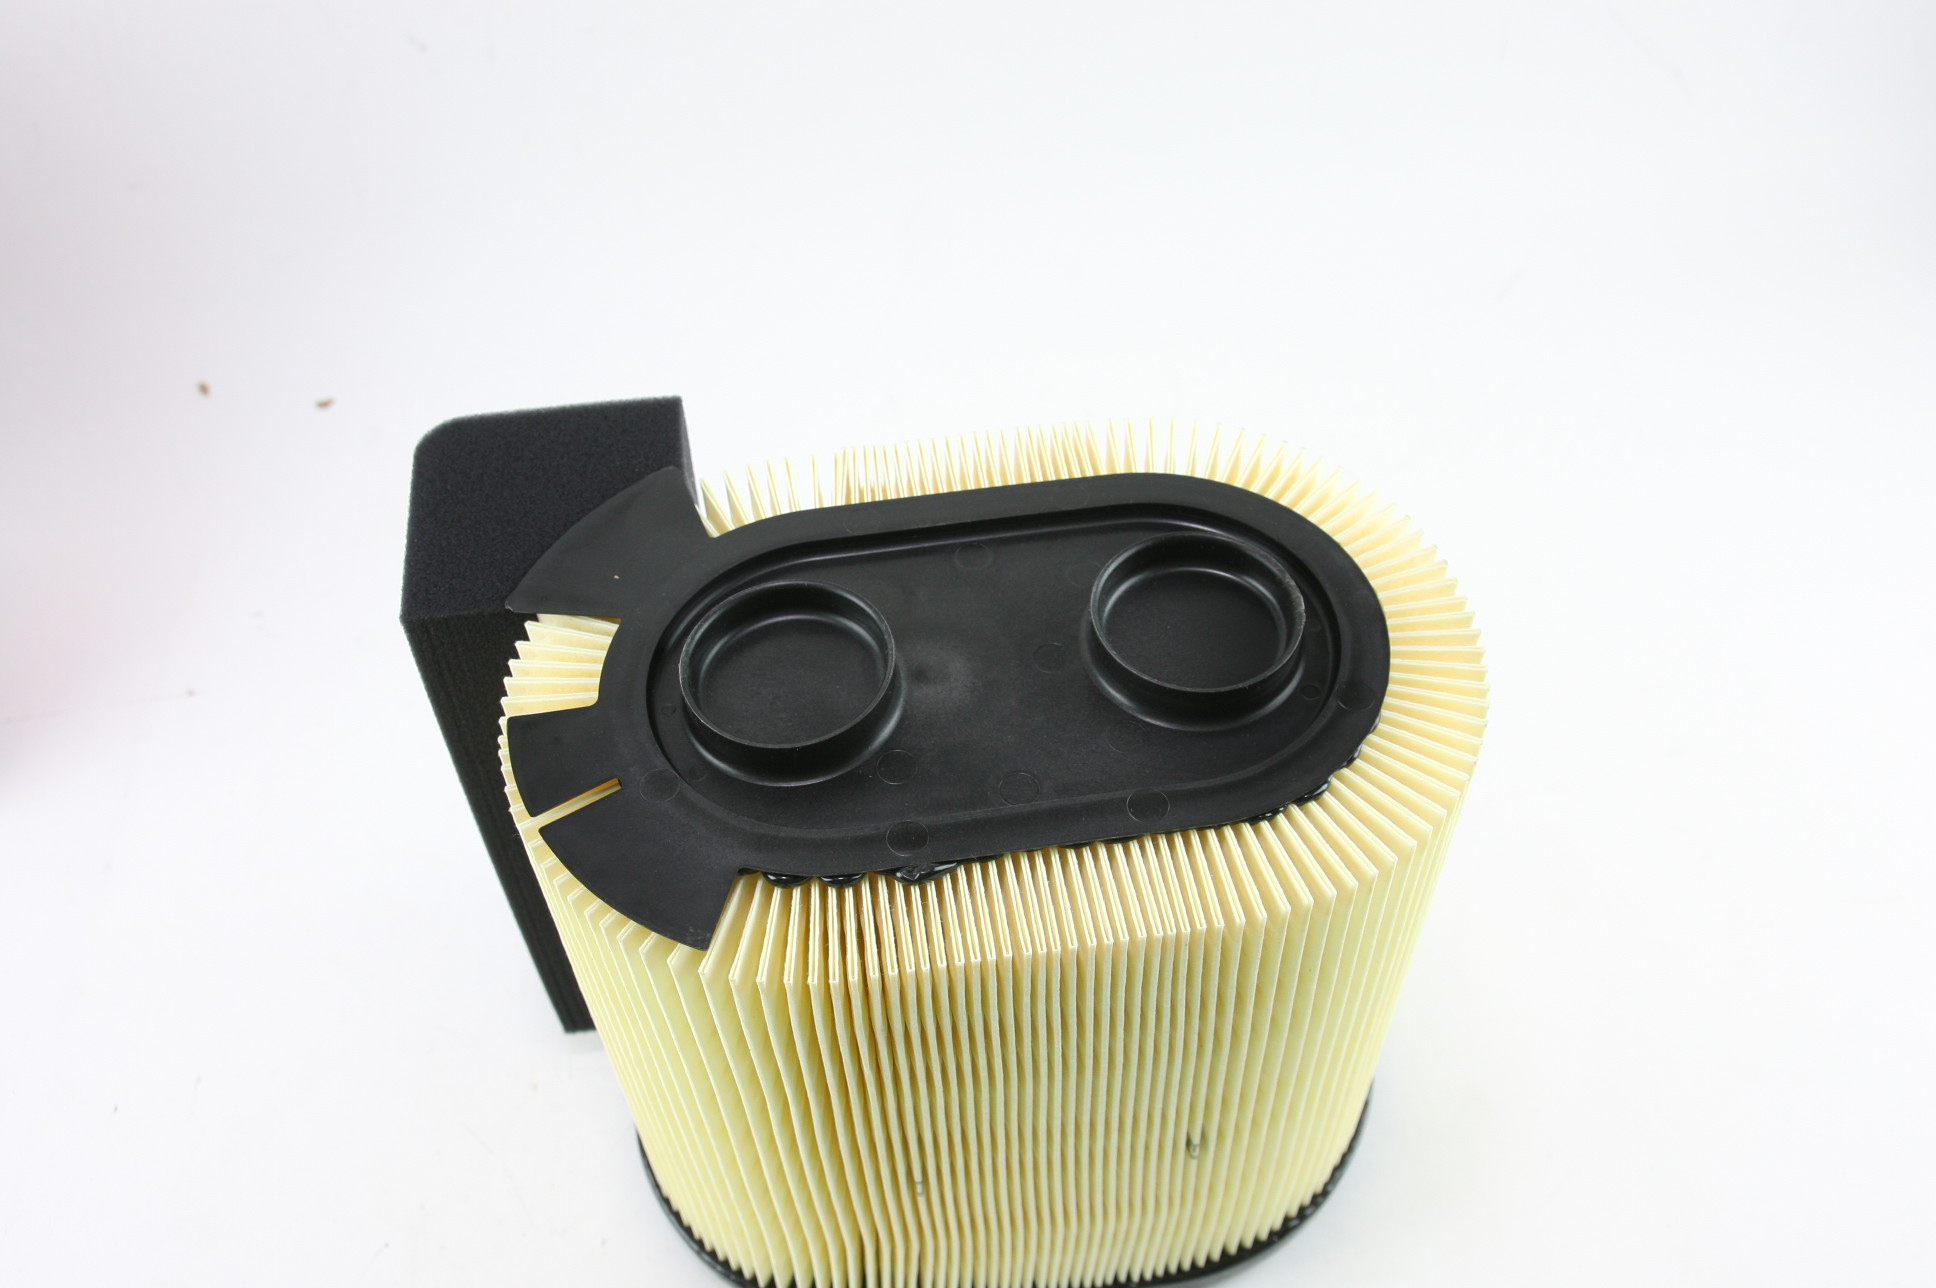 ** New OEM 2 Pack Motorcraft FA1927 Ford HC3Z9601A Powerstroke Diesel Air Filter - image 4